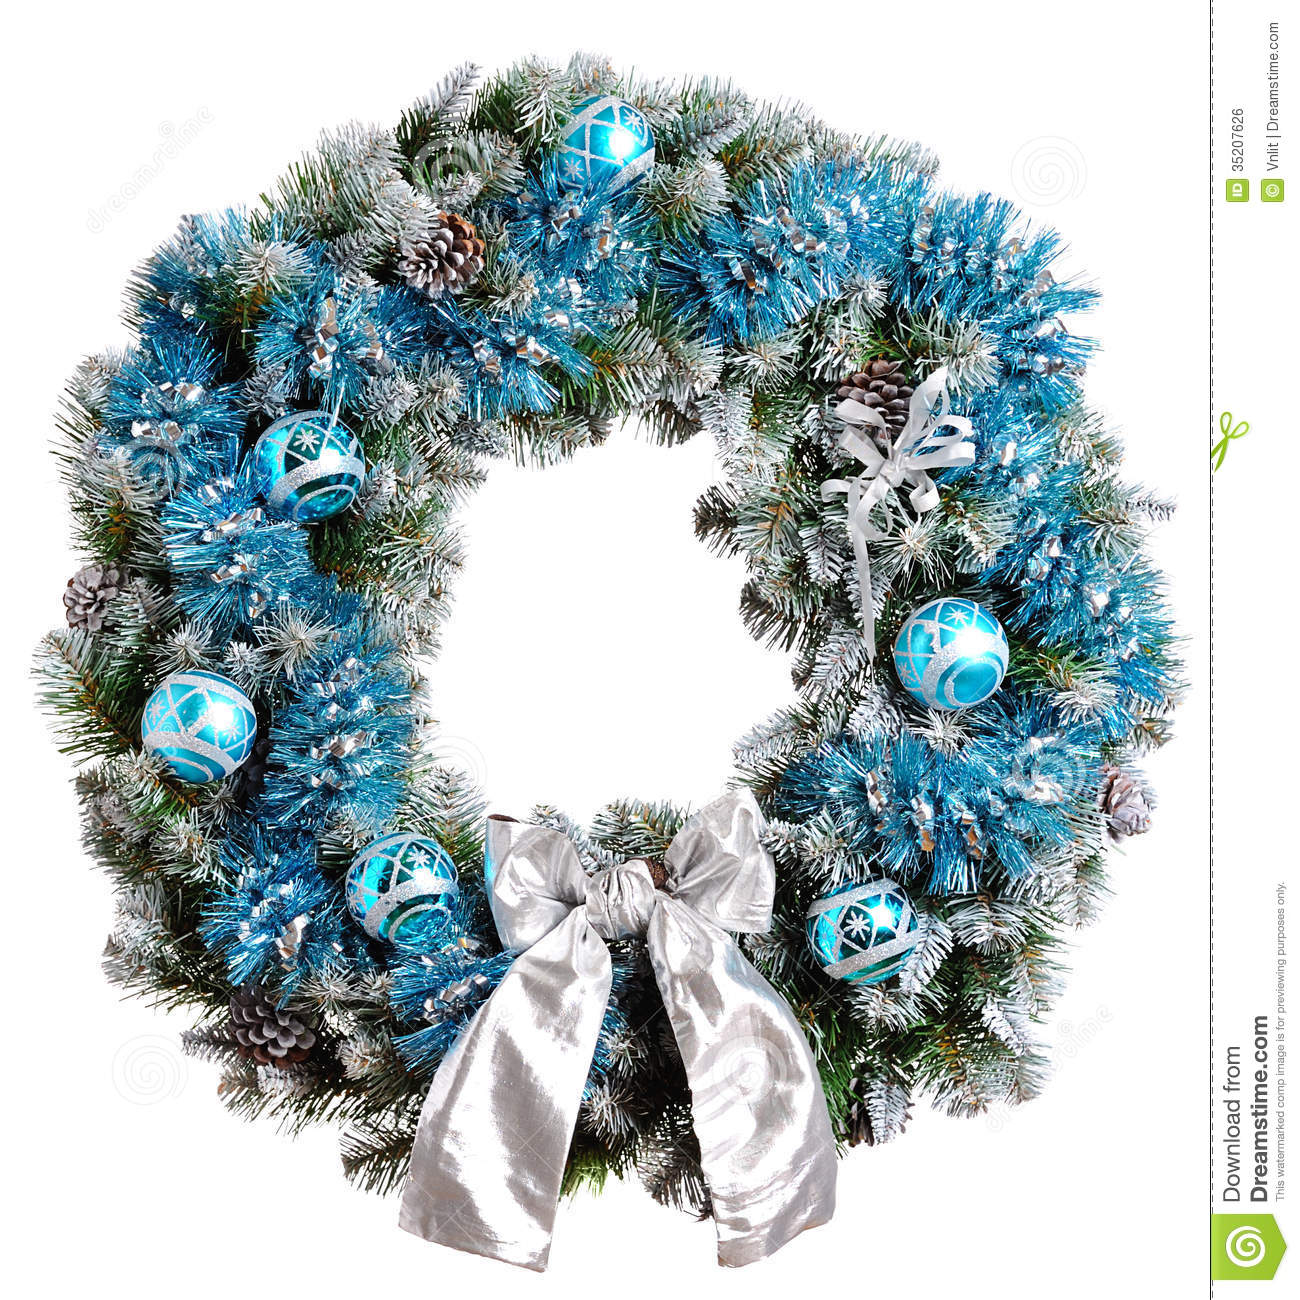 download christmas wreath stock photo image of advent object 35207626 - Blue Christmas Wreath